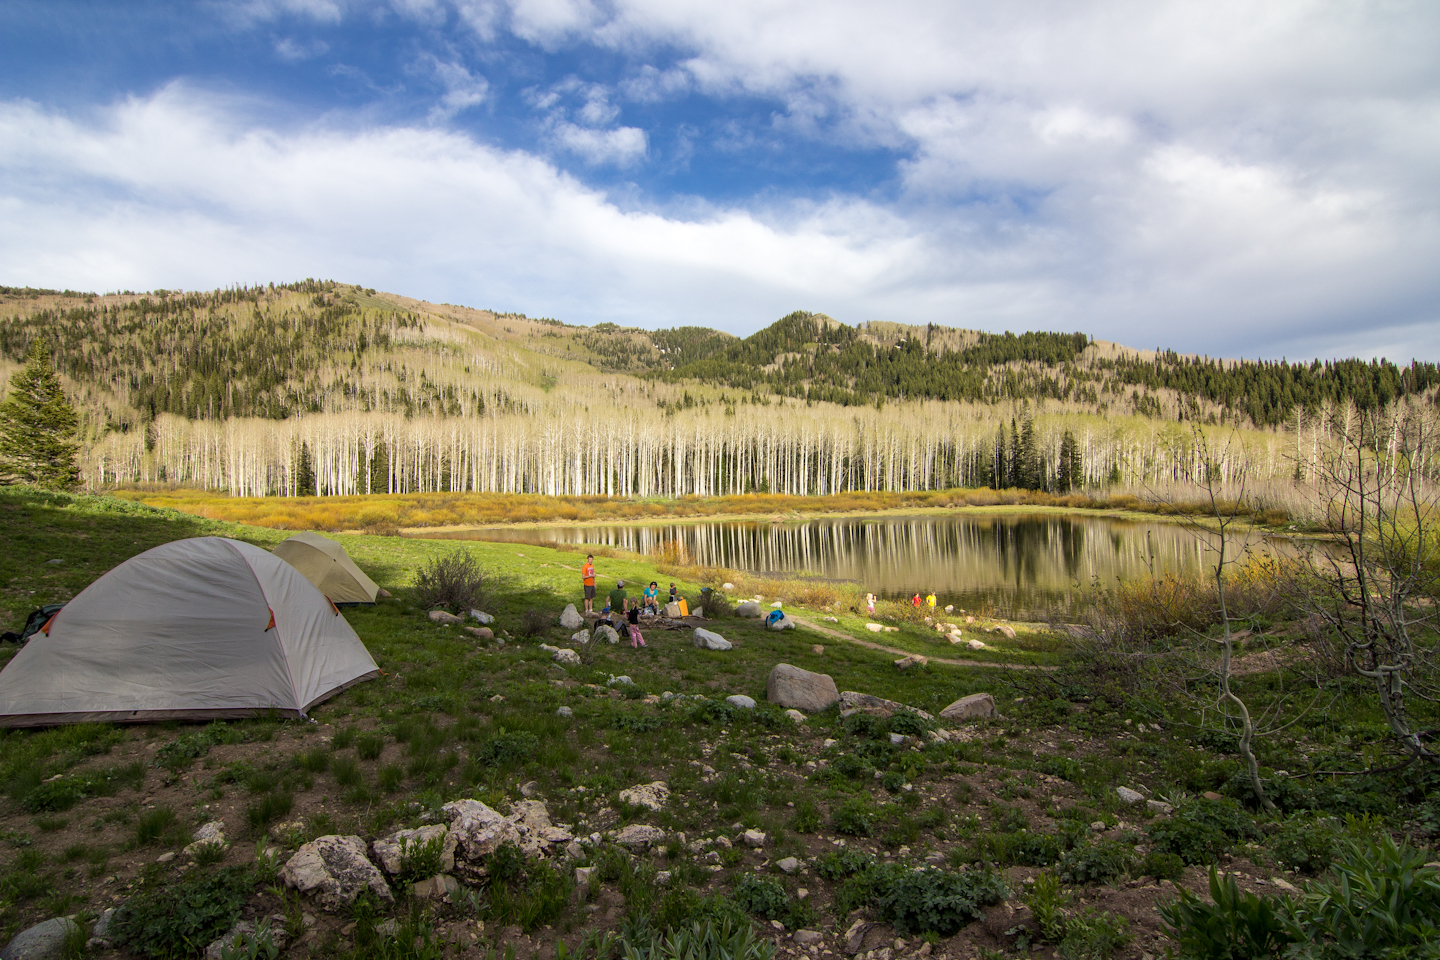 Willow Heights Lake backpacking trip, Wasatch, UT